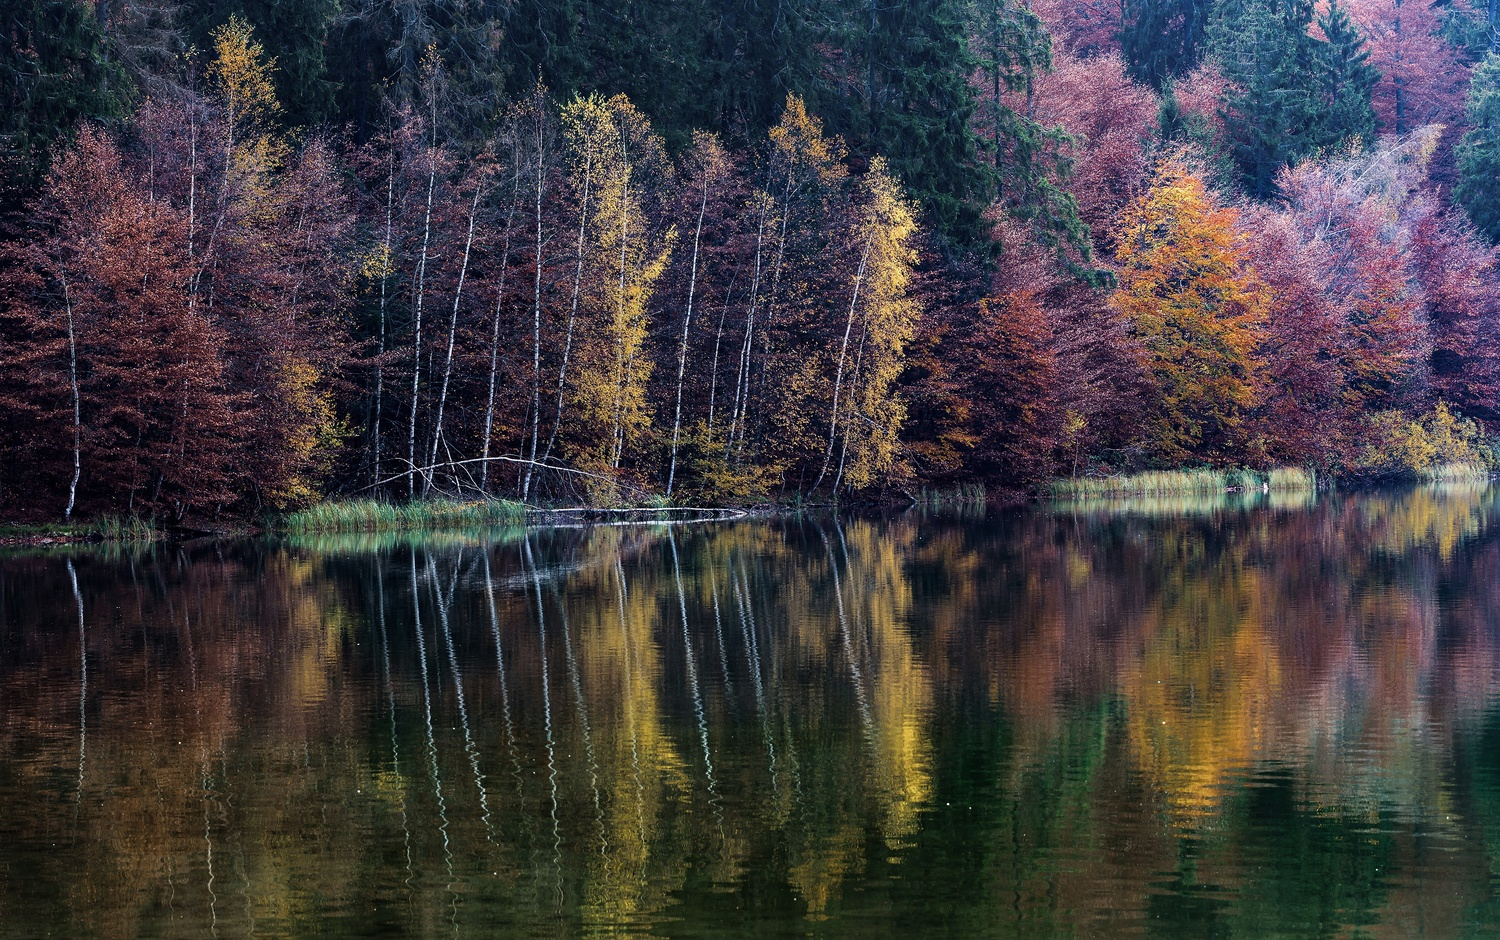 Autumn colors by Andy Ruxanda